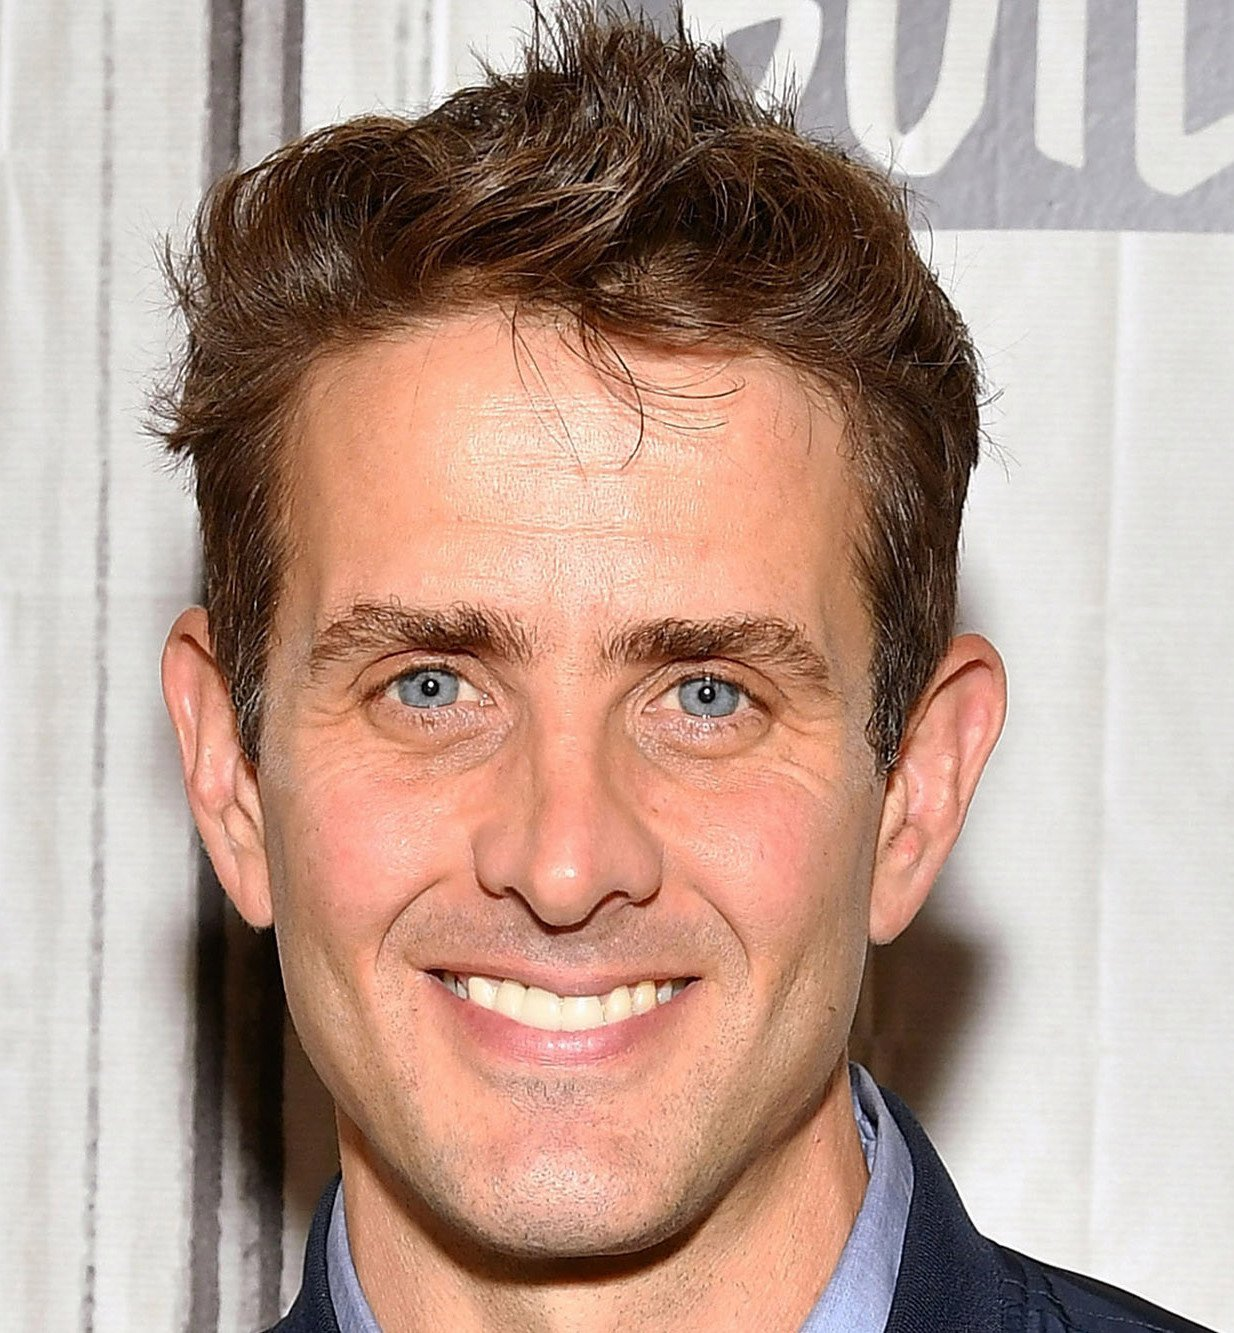 Joey McIntyre smiling for the camera in 2019